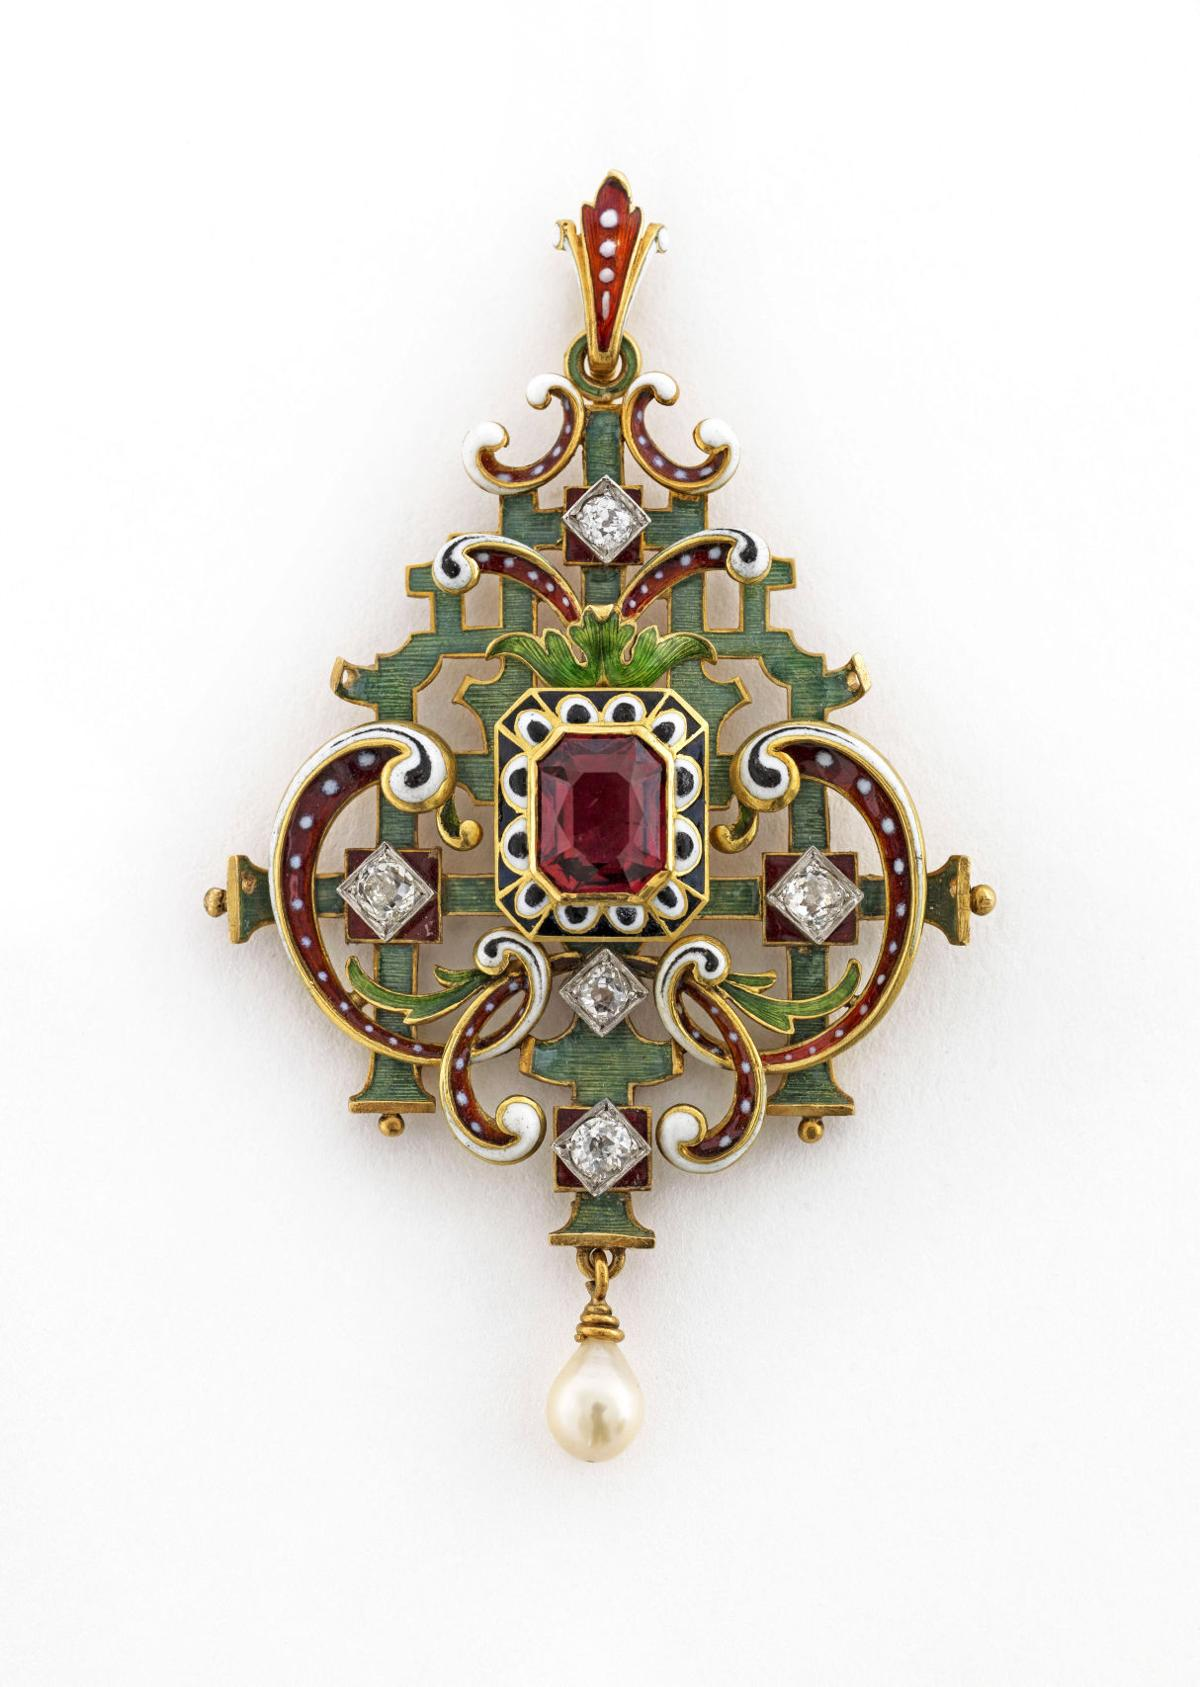 a history of dazzling designs [JUMP]Joslyn exhibit details evolving trends in French jewelry over four centuries